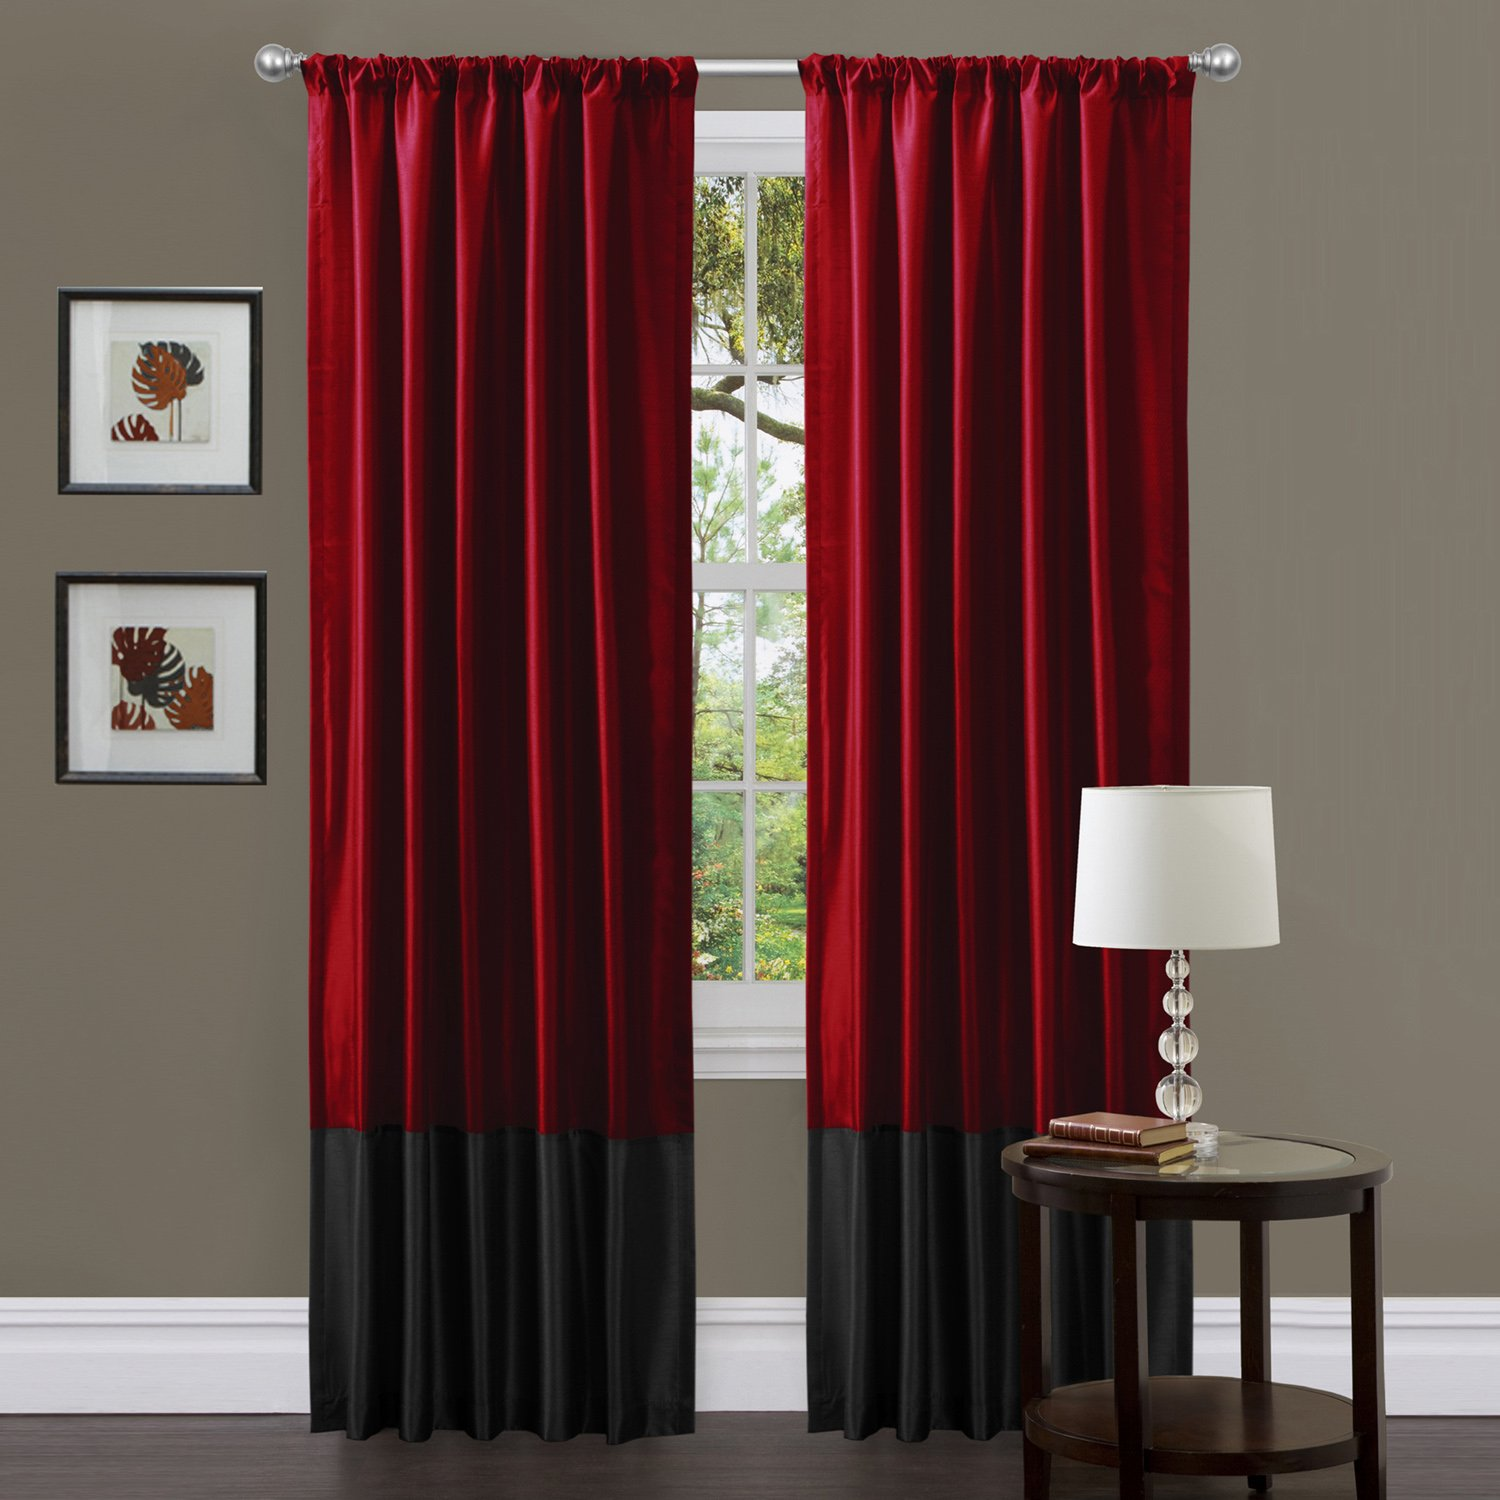 Black red bedroom decor